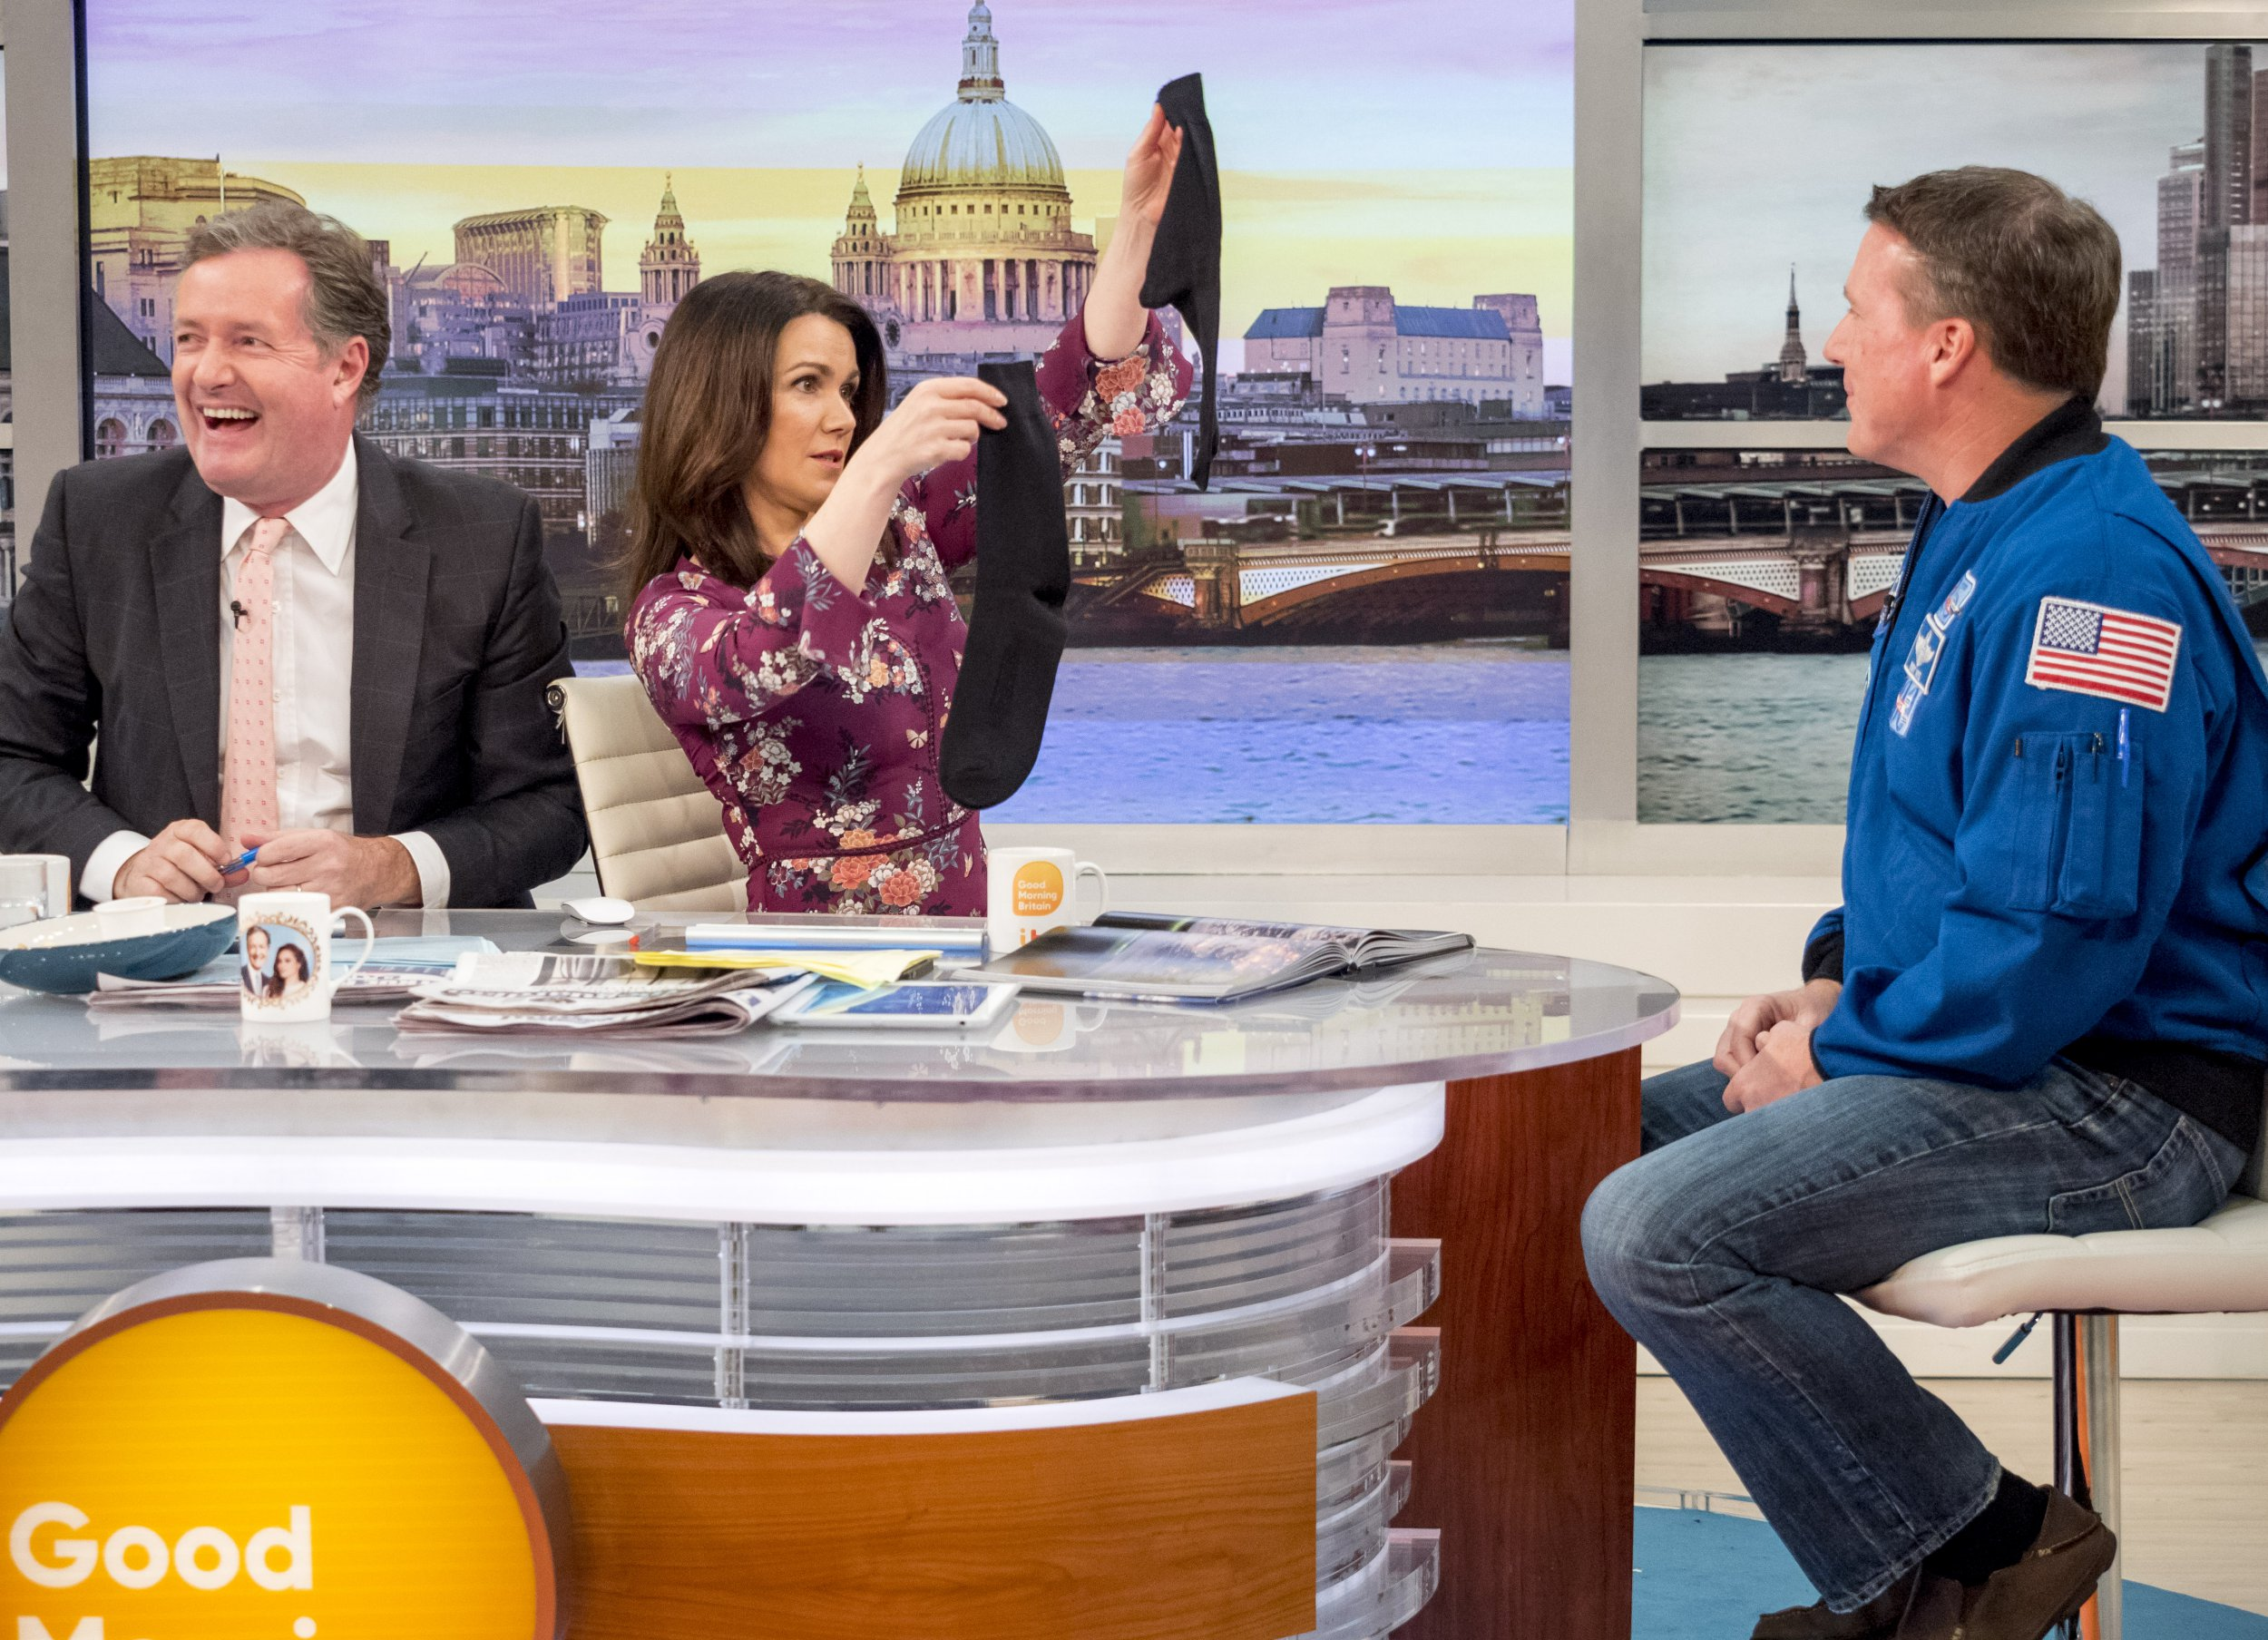 Flat Earth conspiracy theorist gets slapped down by astronaut on Good Morning Britain